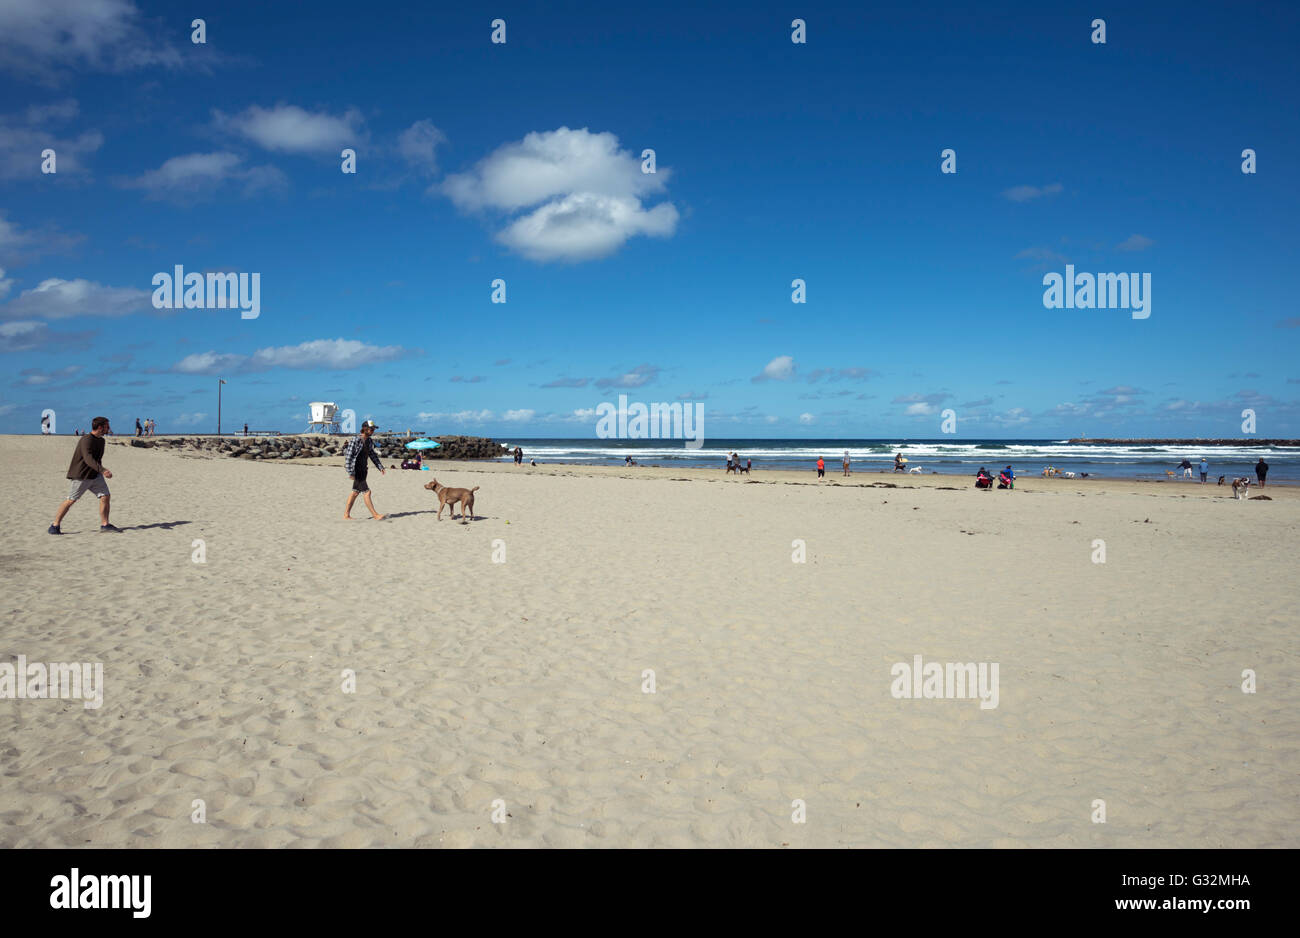 People and dogs at Dog Beach at Ocean Beach. San Diego, California. - Stock Image